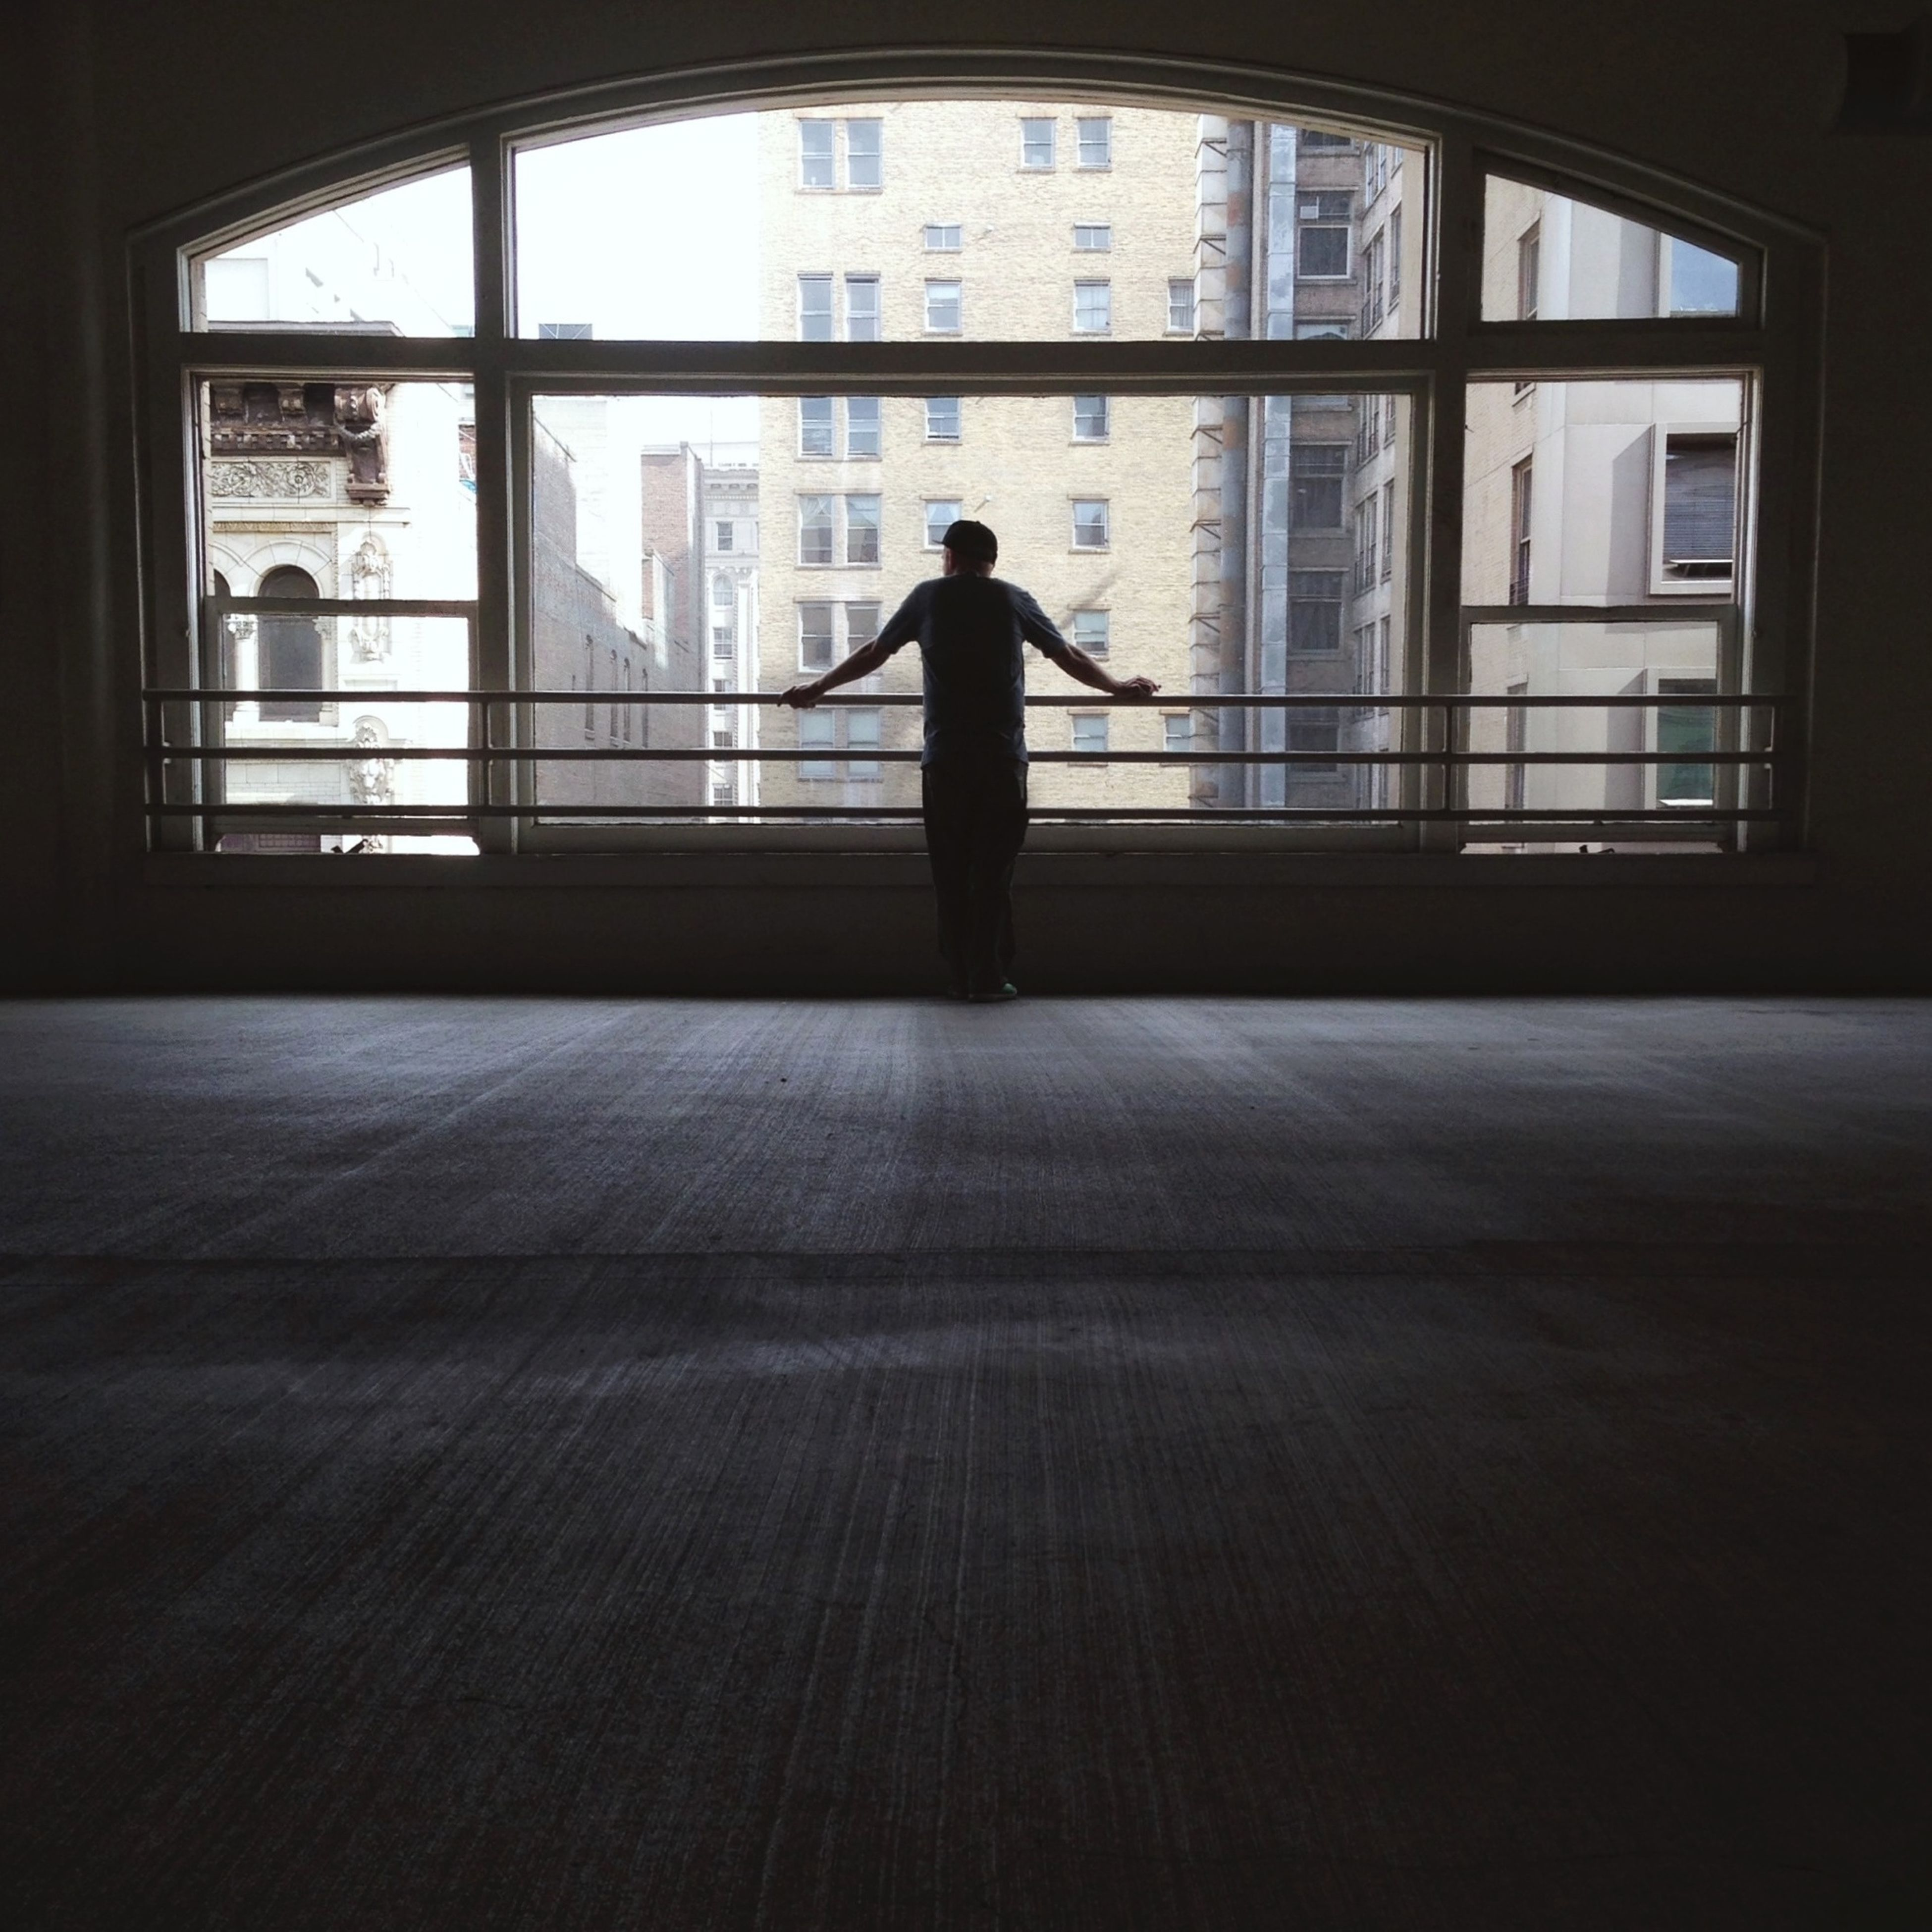 indoors, silhouette, architecture, built structure, full length, window, men, rear view, lifestyles, standing, walking, person, glass - material, leisure activity, unrecognizable person, side view, one man only, building